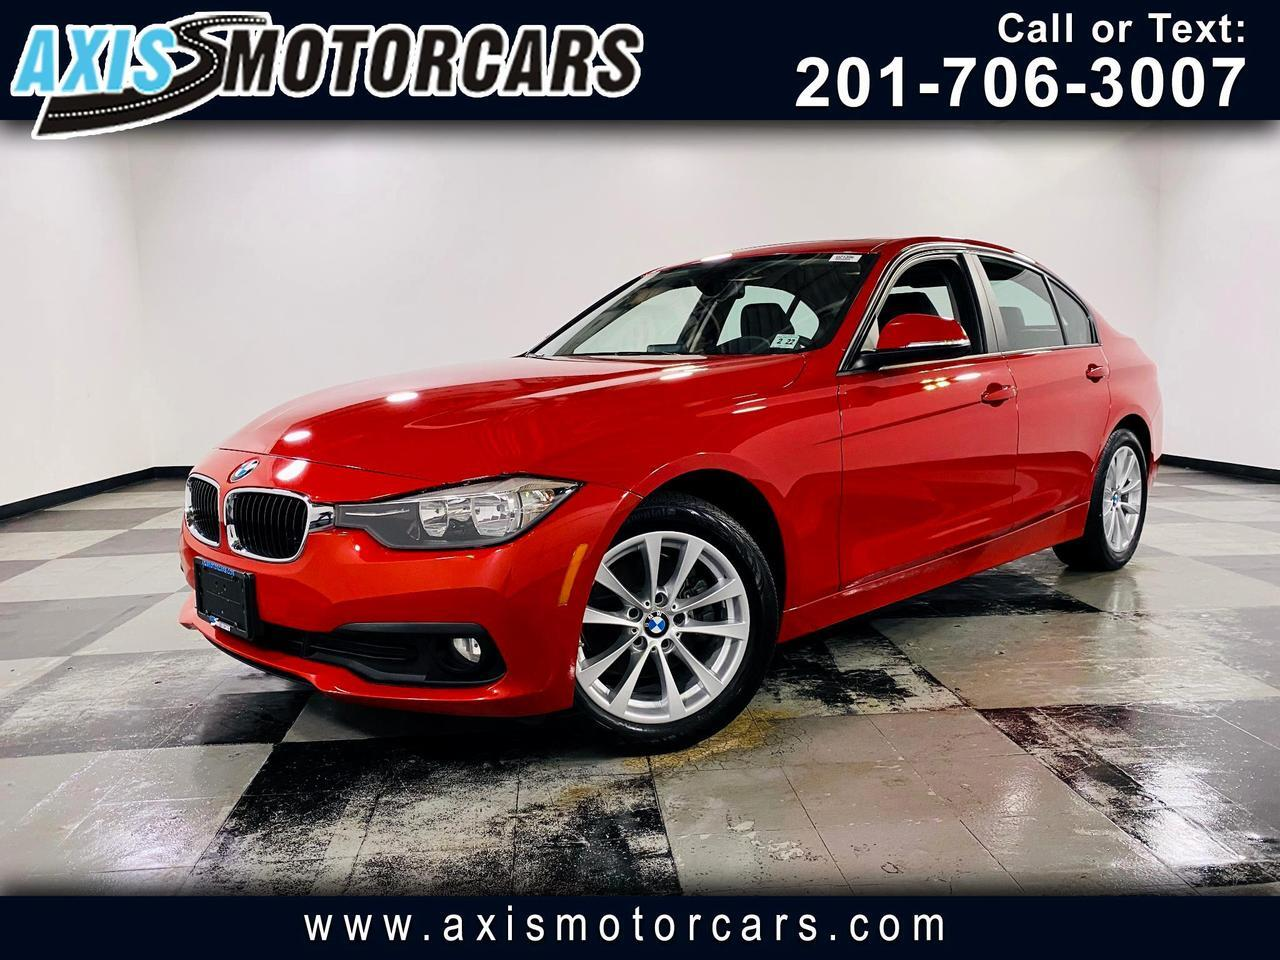 2016 BMW 3 Series 4dr Sdn 320i xDrive AWD South Africa Jersey City NJ